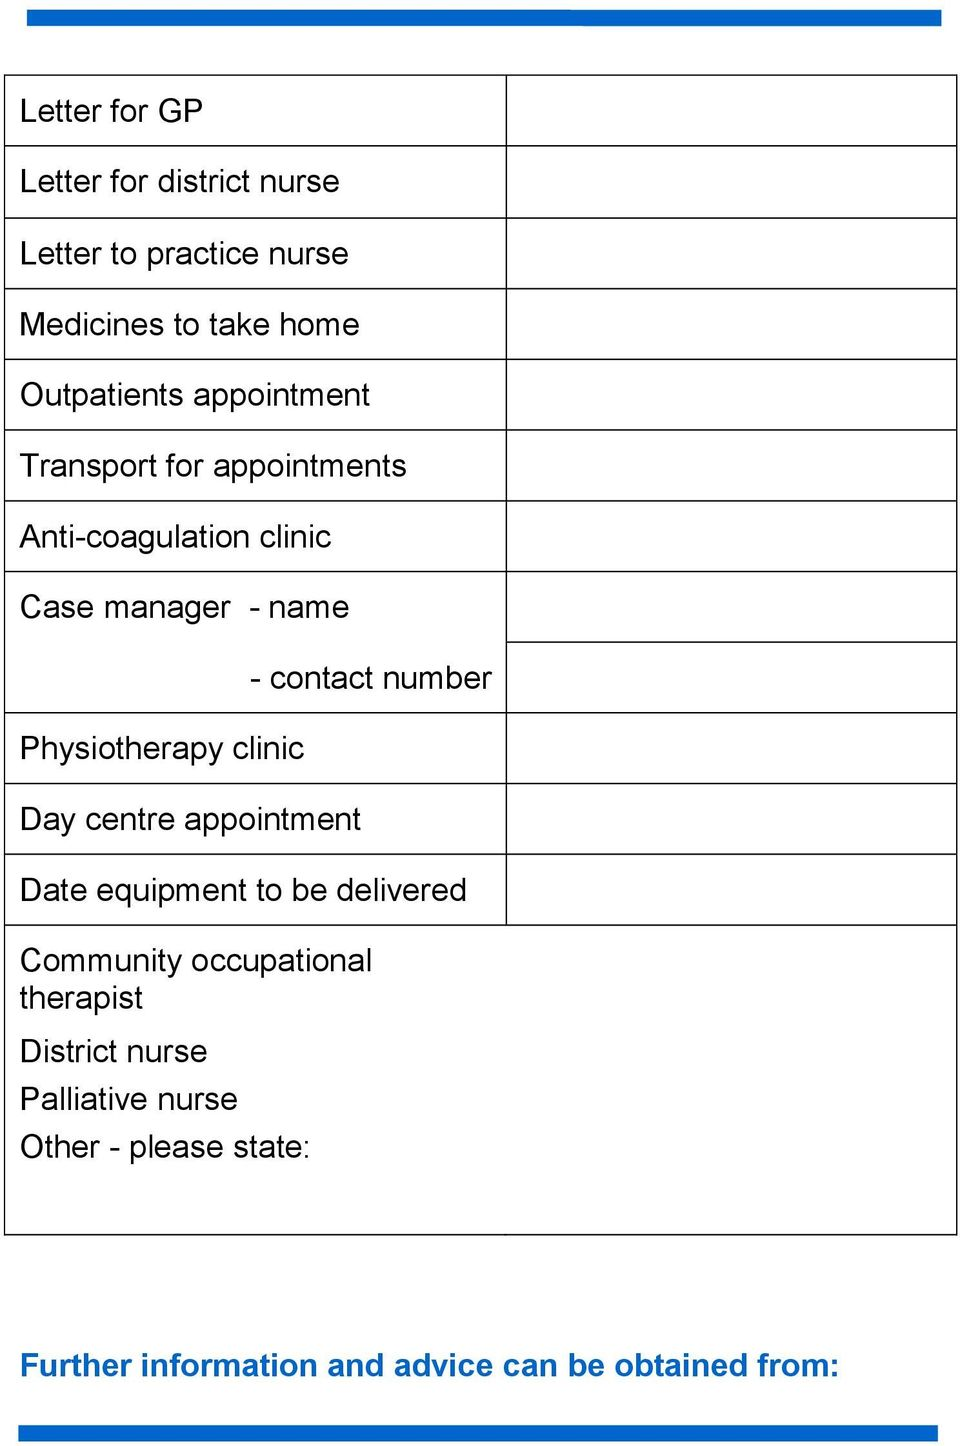 Day centre appointment - contact number Date equipment to be delivered Community occupational therapist